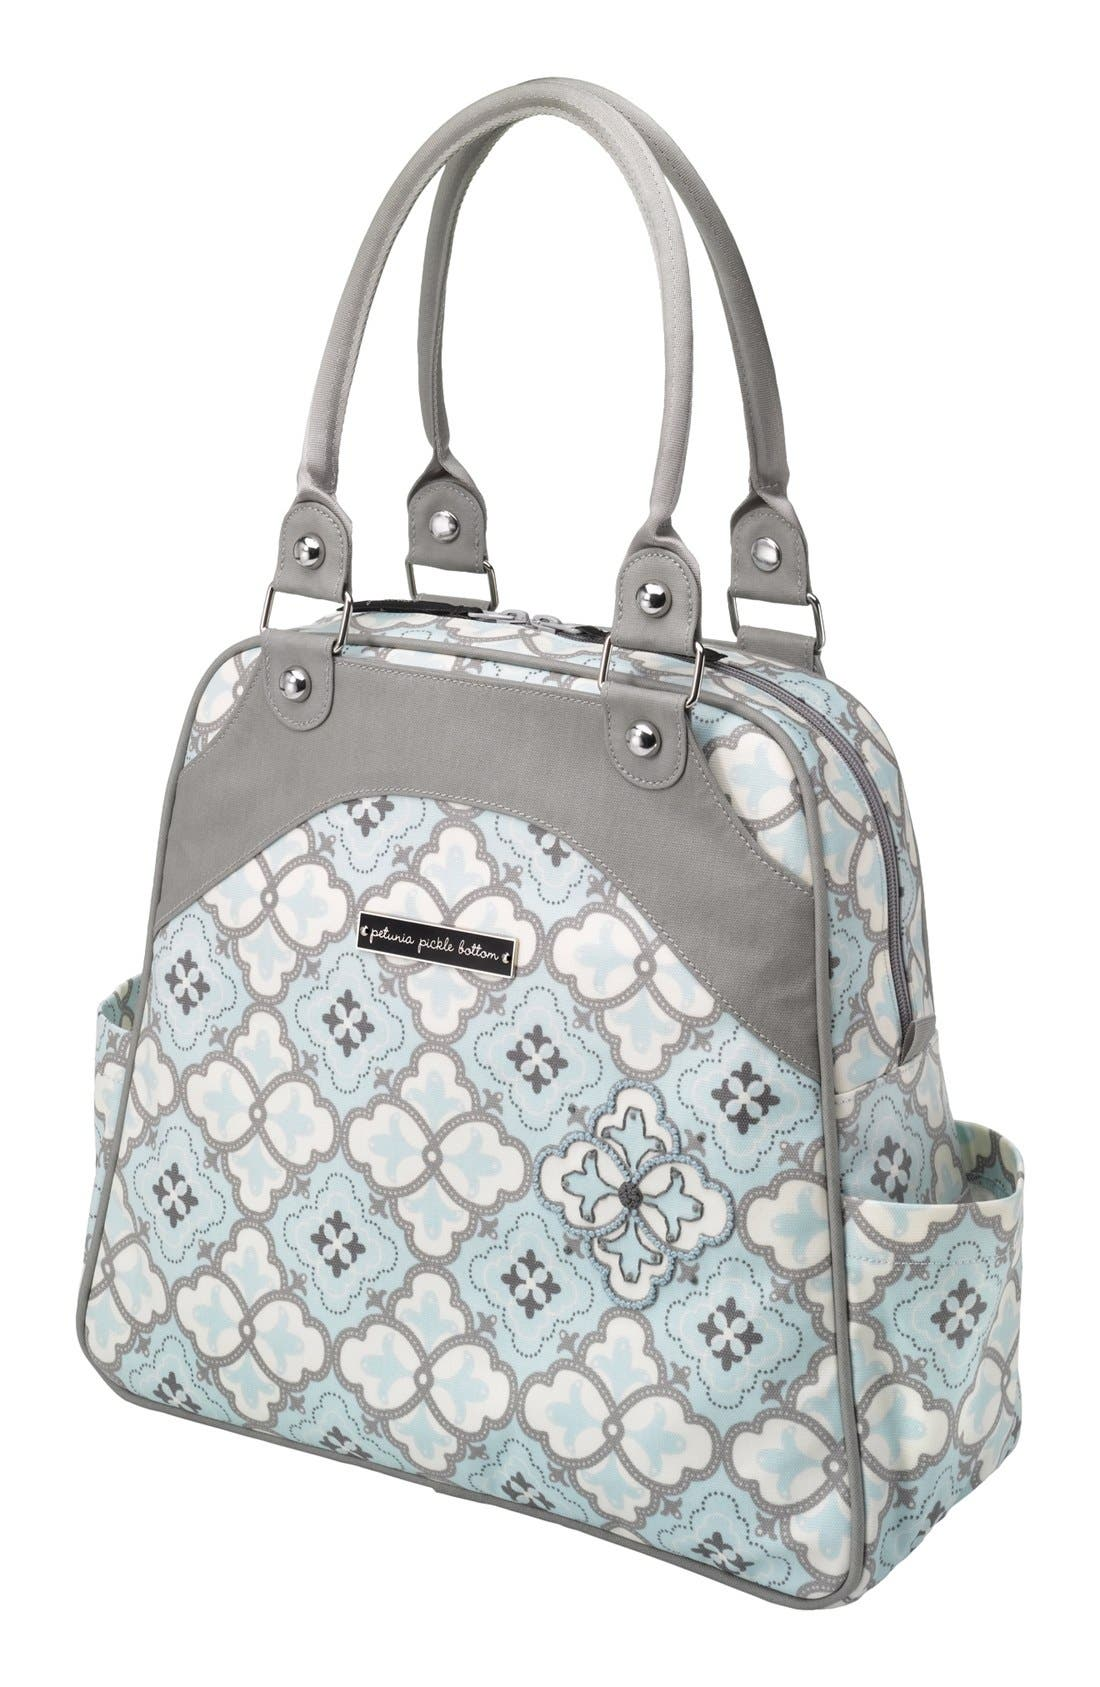 Main Image - Petunia Pickle Bottom 'Sashay Satchel' Glazed Diaper Bag